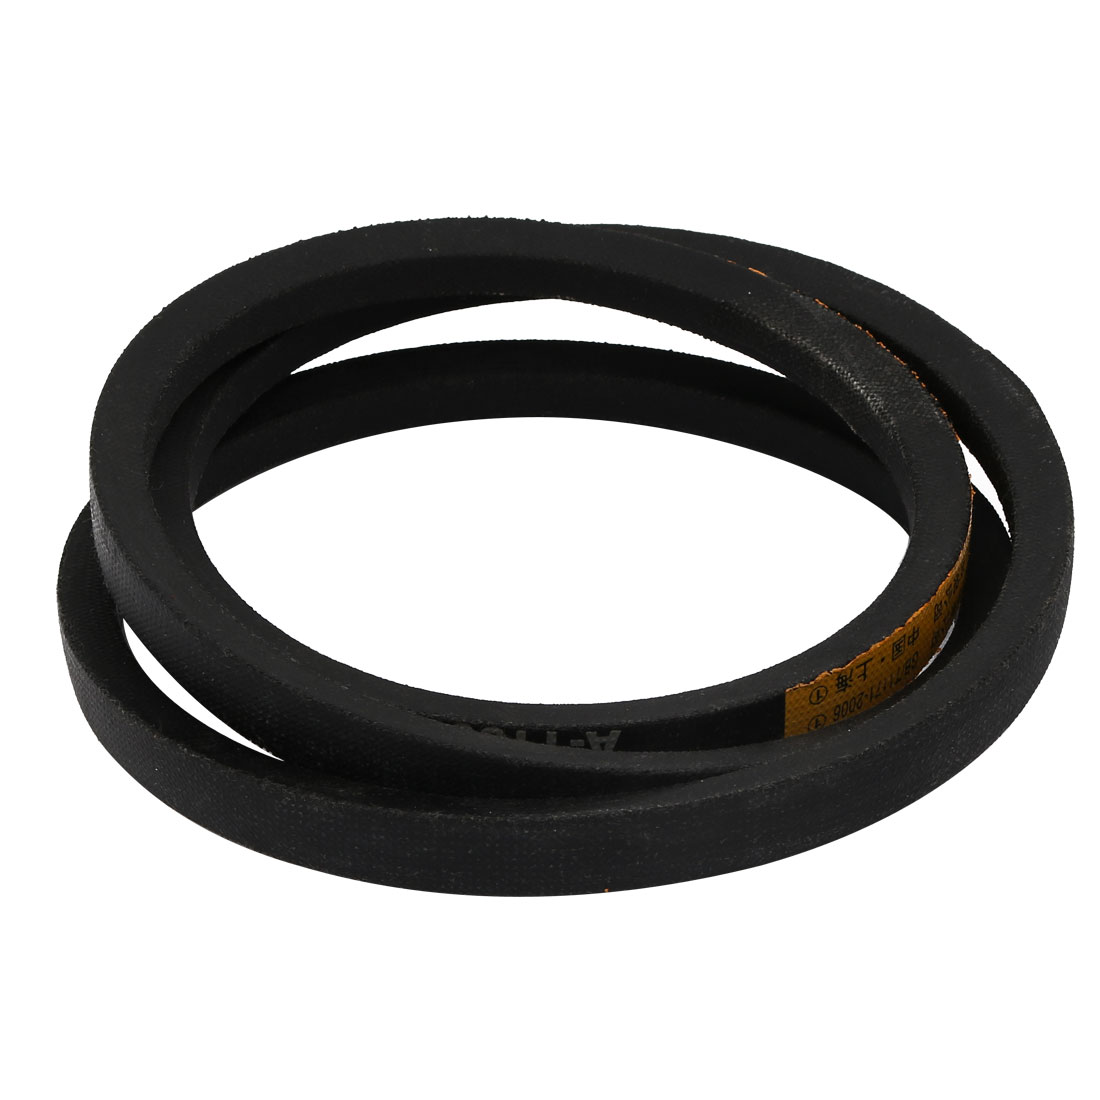 A1180 13mm Width 8mm Thickness Rubber Transmission Drive V-Belt